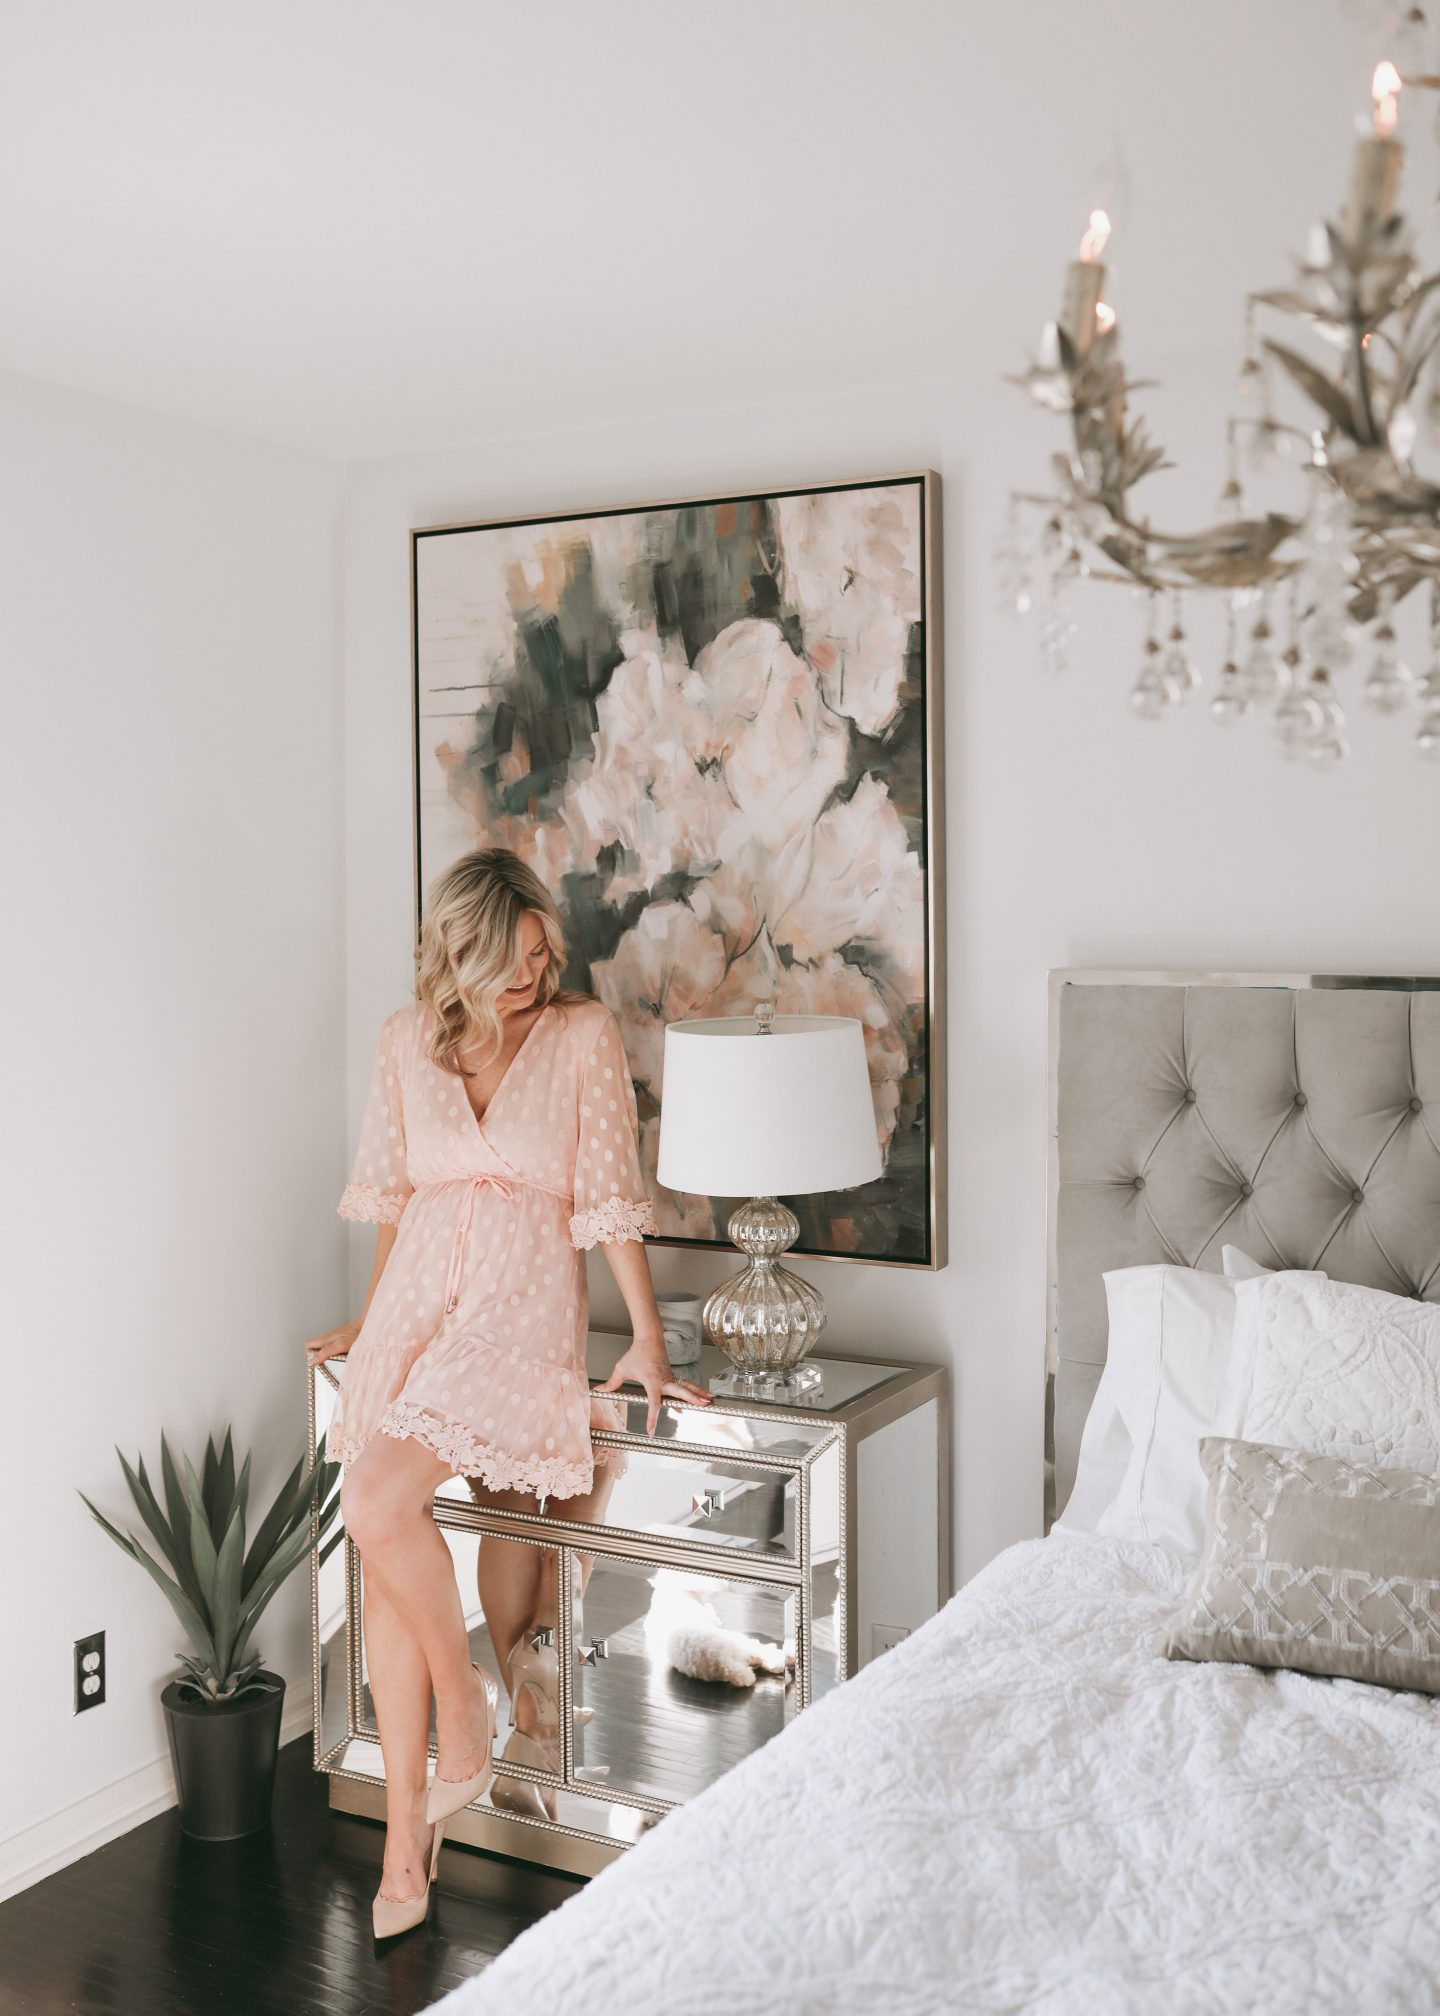 Spring Refresh with Z GALLERIE   A Peek Inside Our Master Bedroom